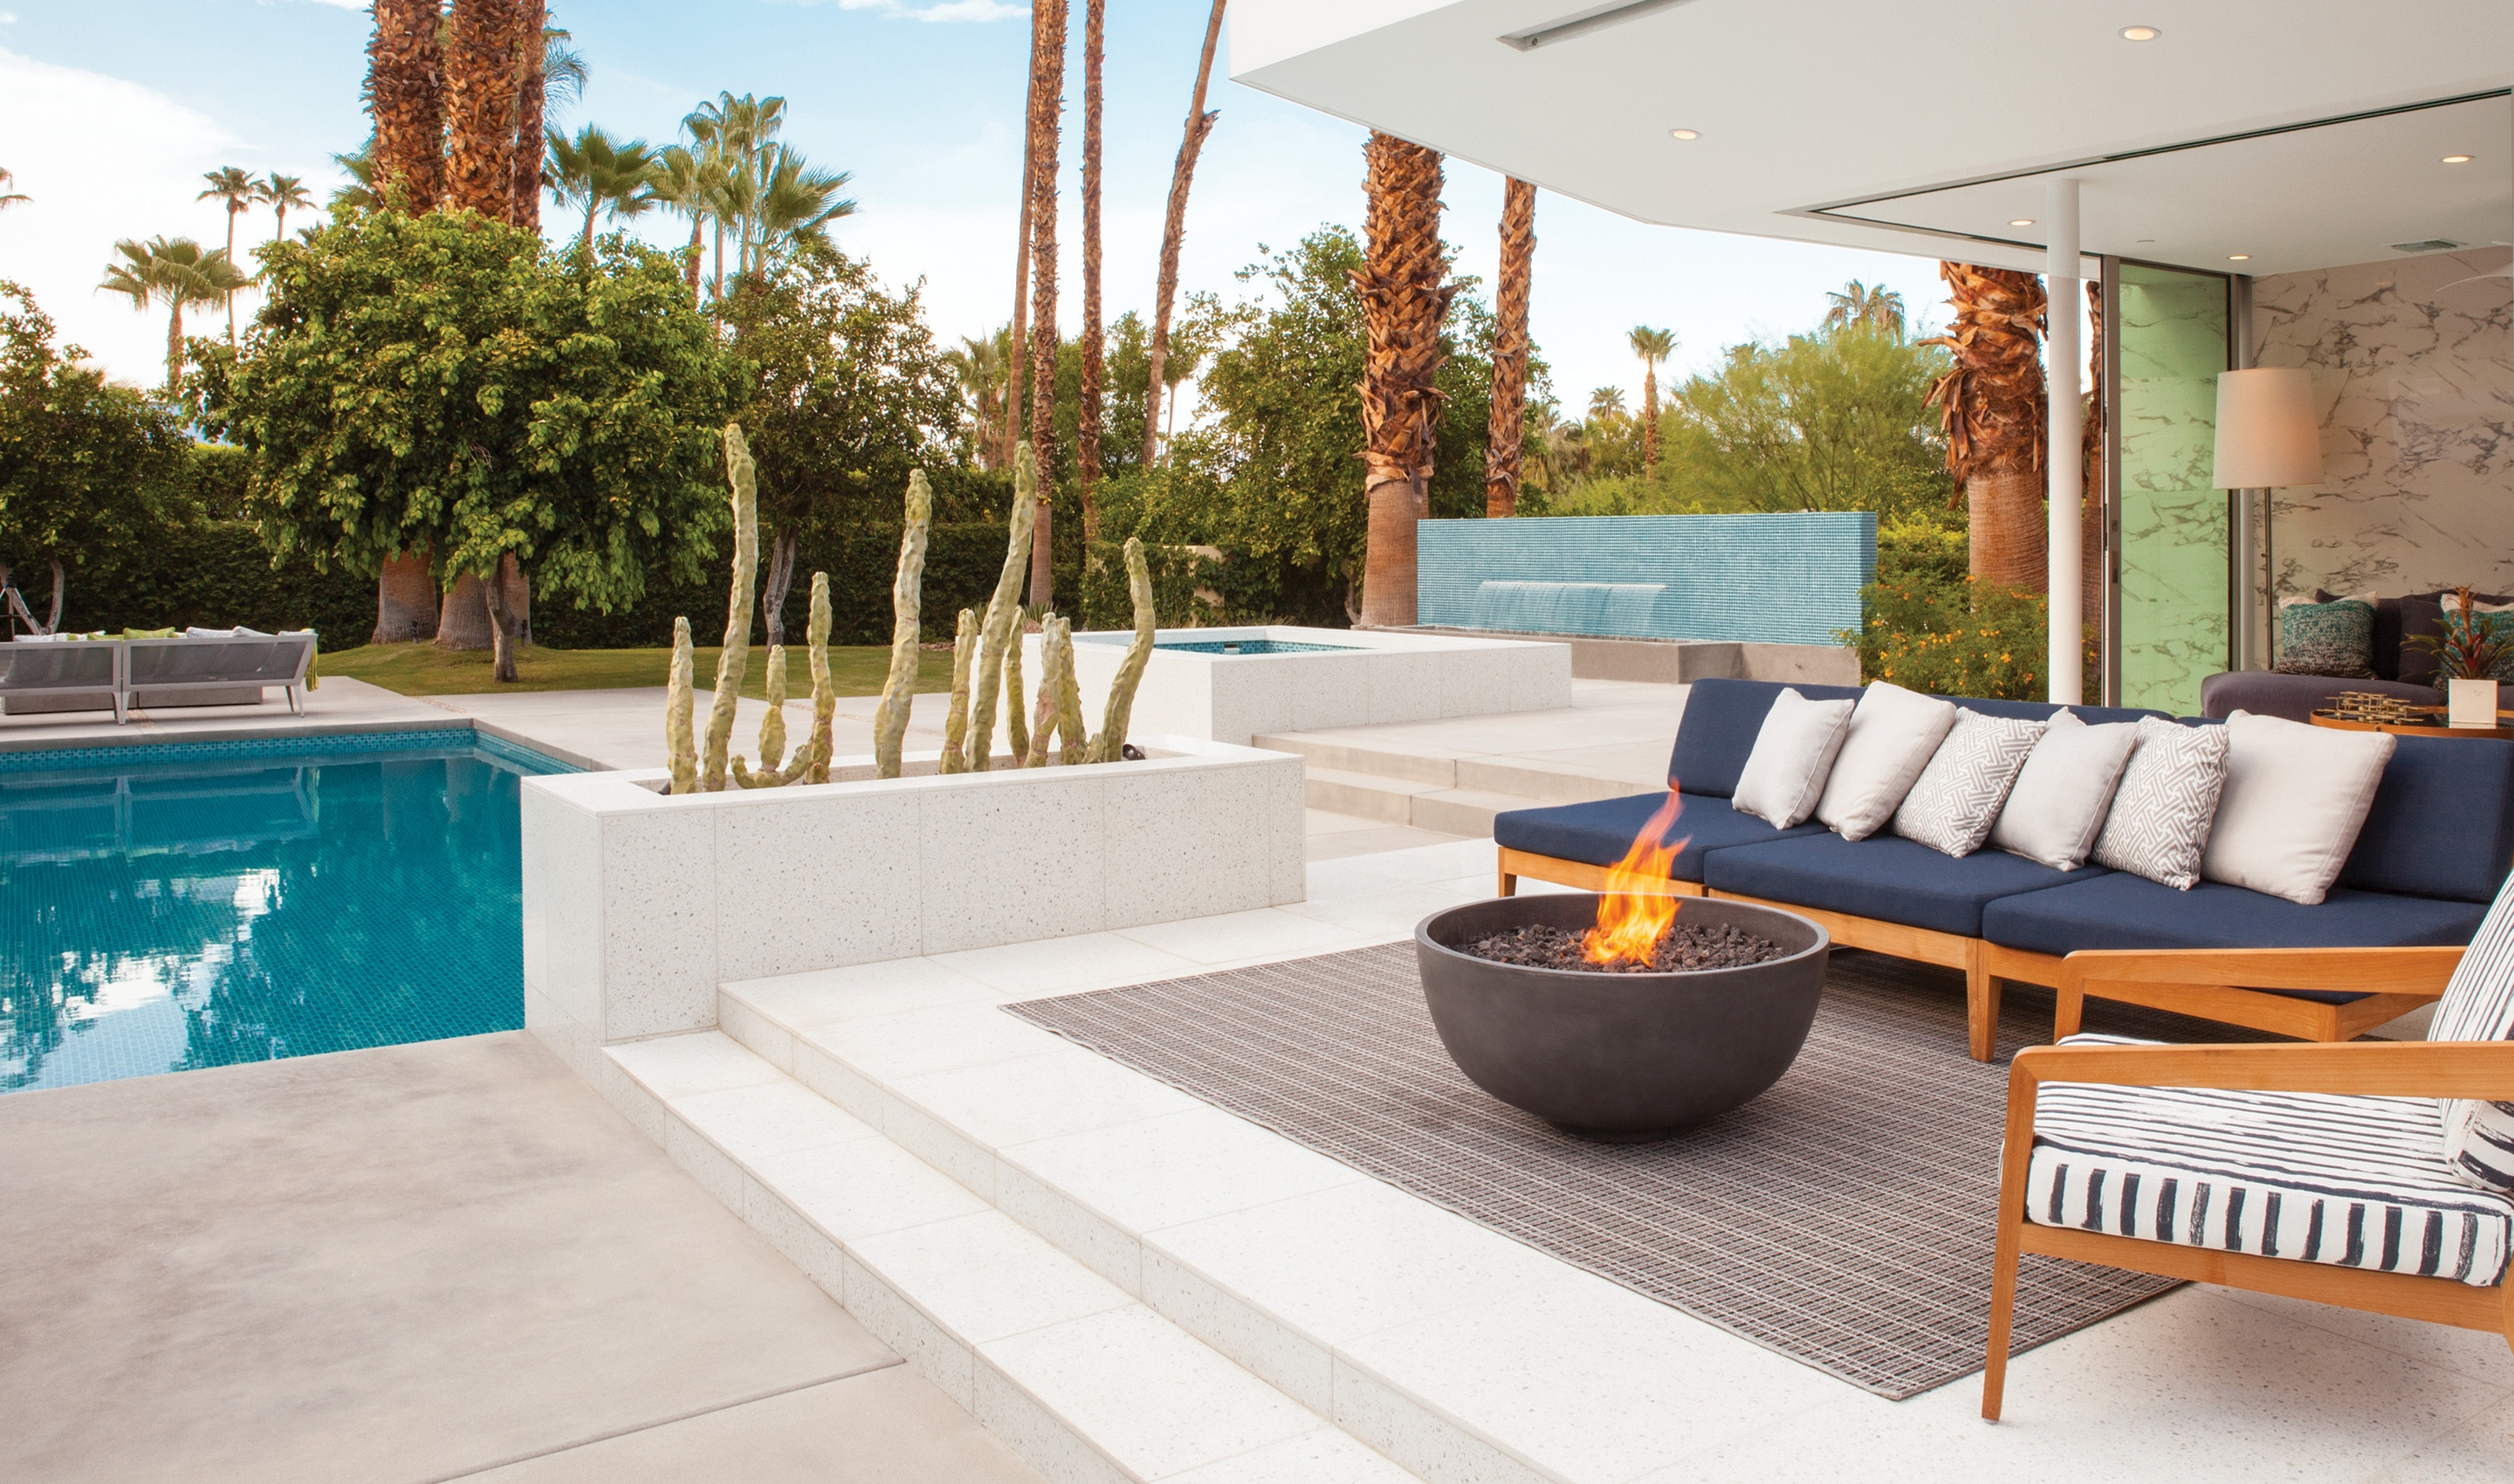 Gas Fire Pits at Casual Creations